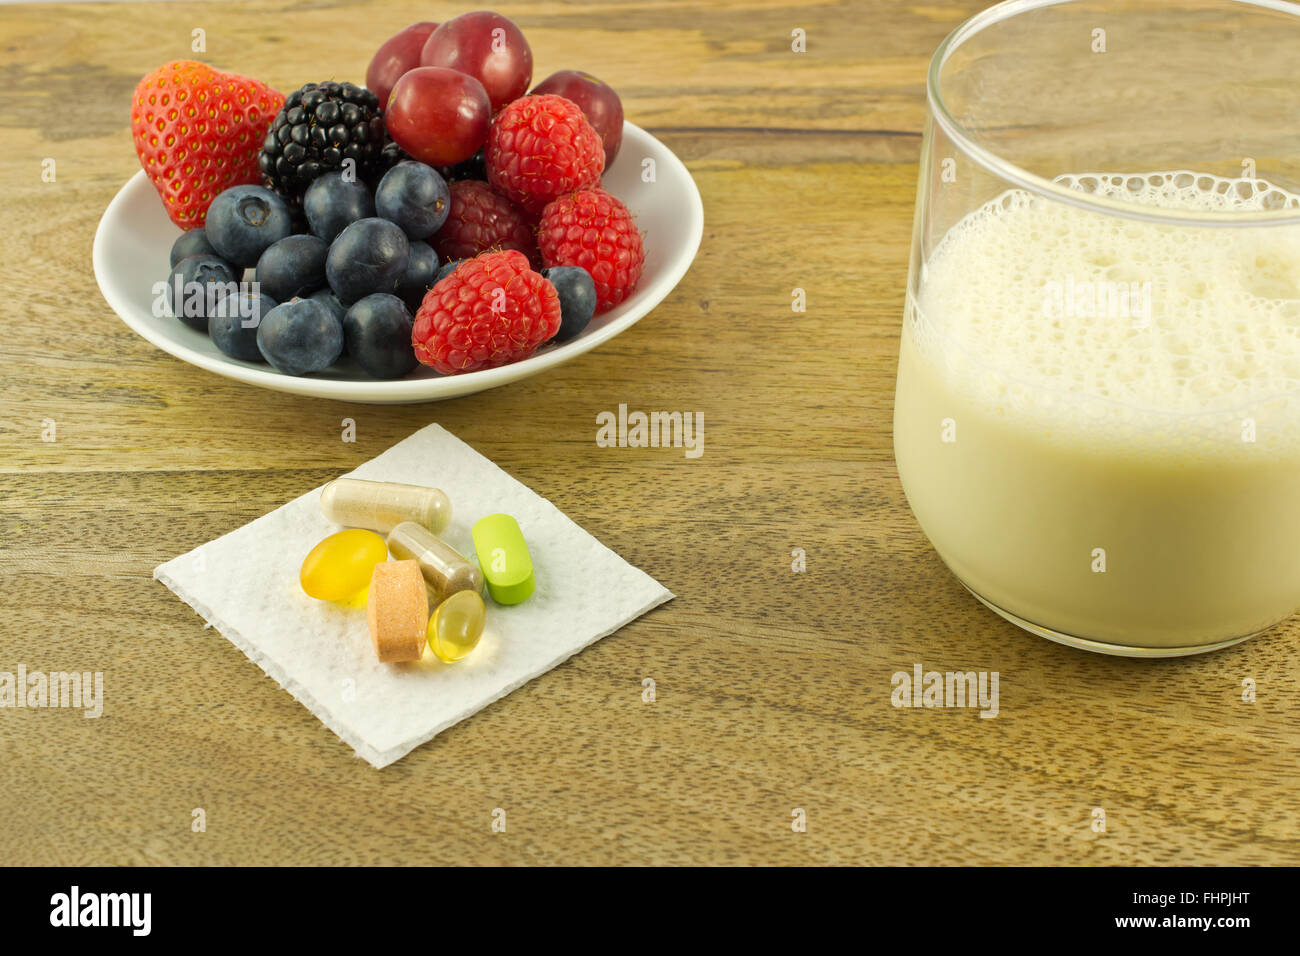 Berries, anti-oxidant supplements and a cup of soy milk on wooden table Stock Photo